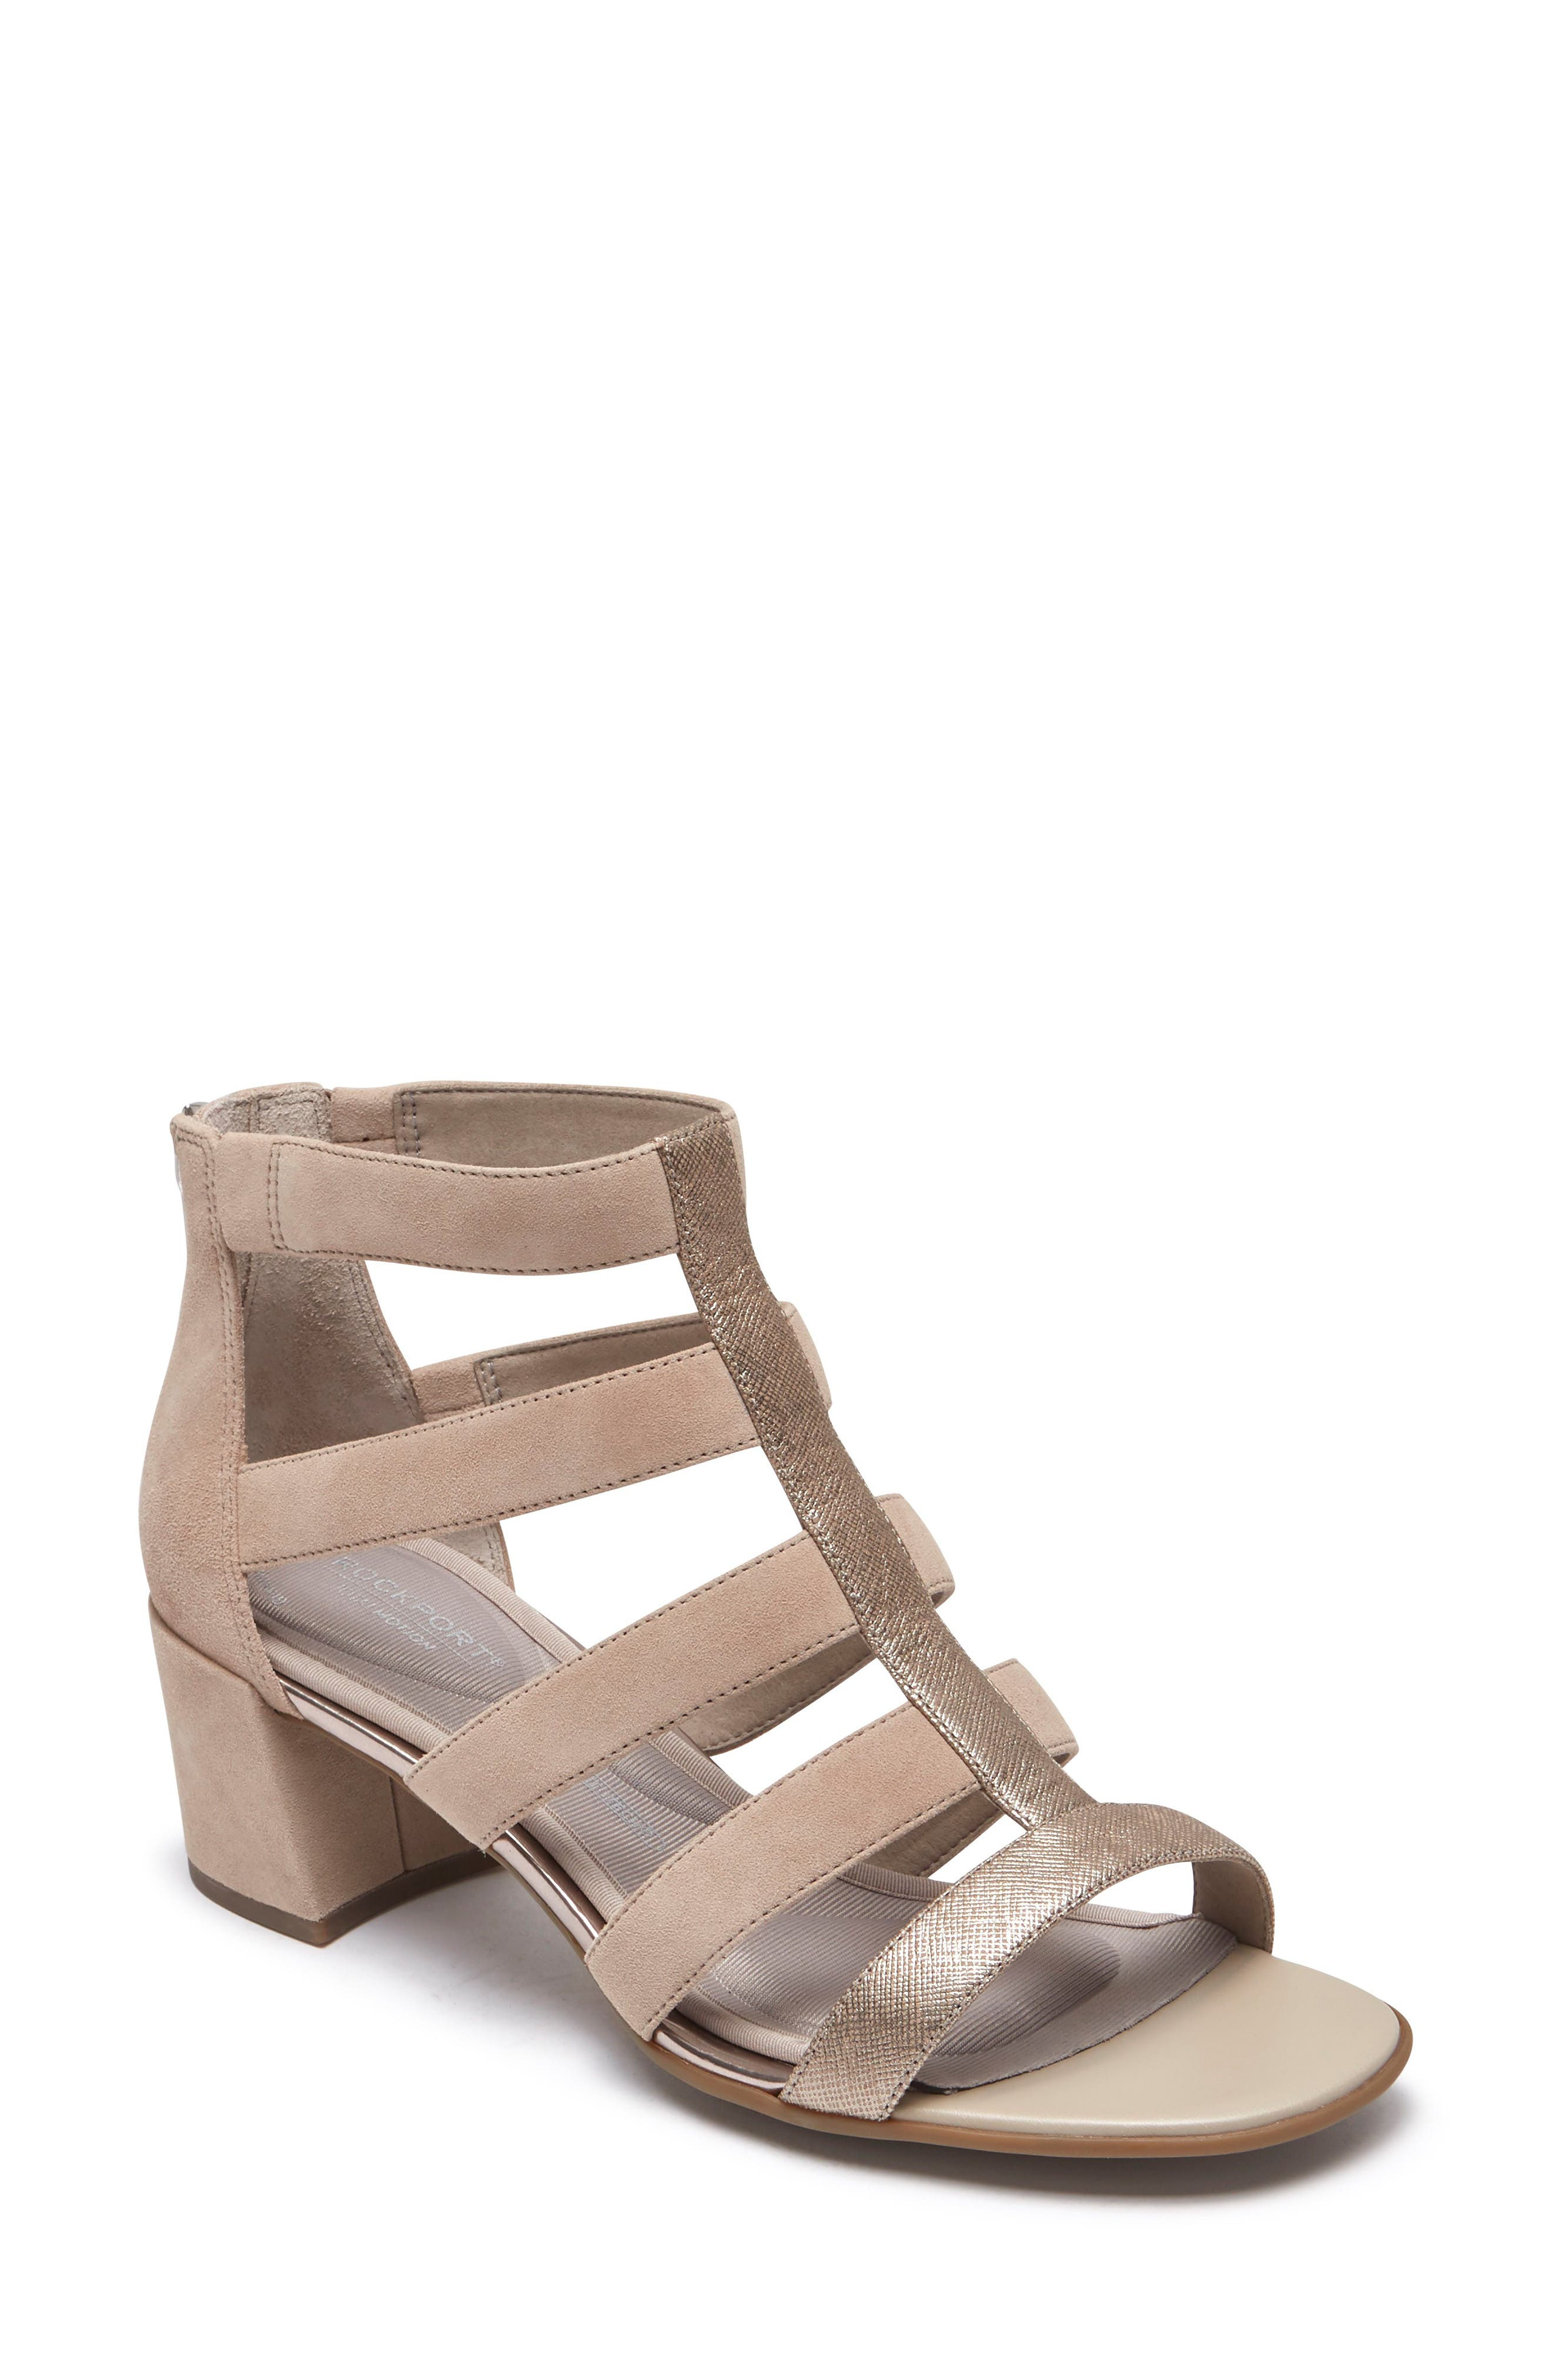 ROCKPORT Total Motion Alaina Luxe Cage Sandal, Main, color, DOVE SUEDE